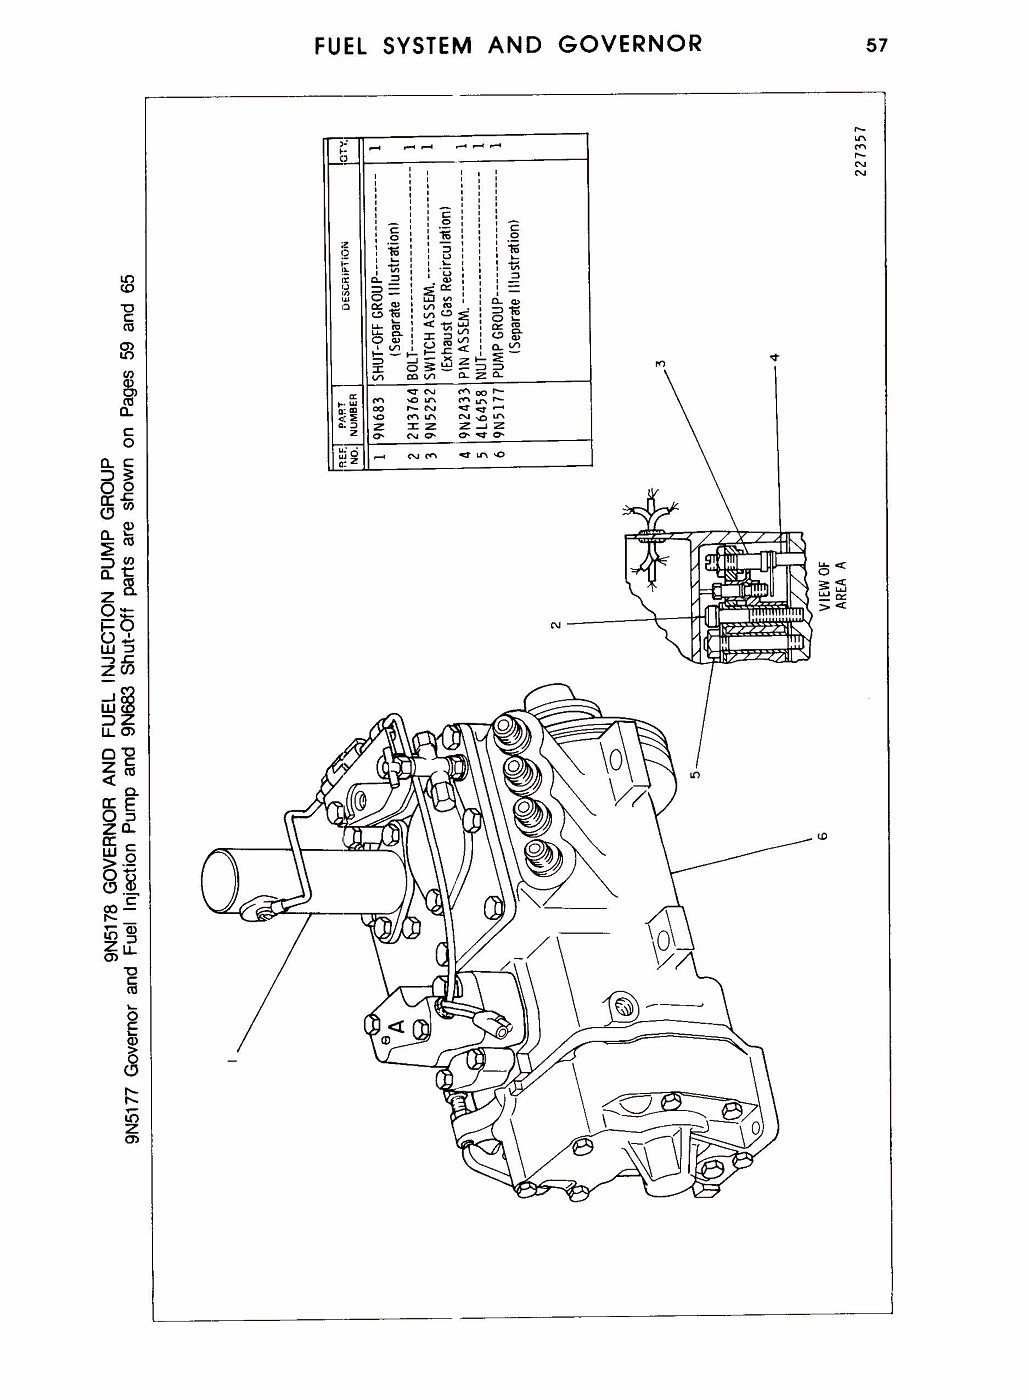 Caterpillar 3208 marine engine parts manual / Bitcoin shop